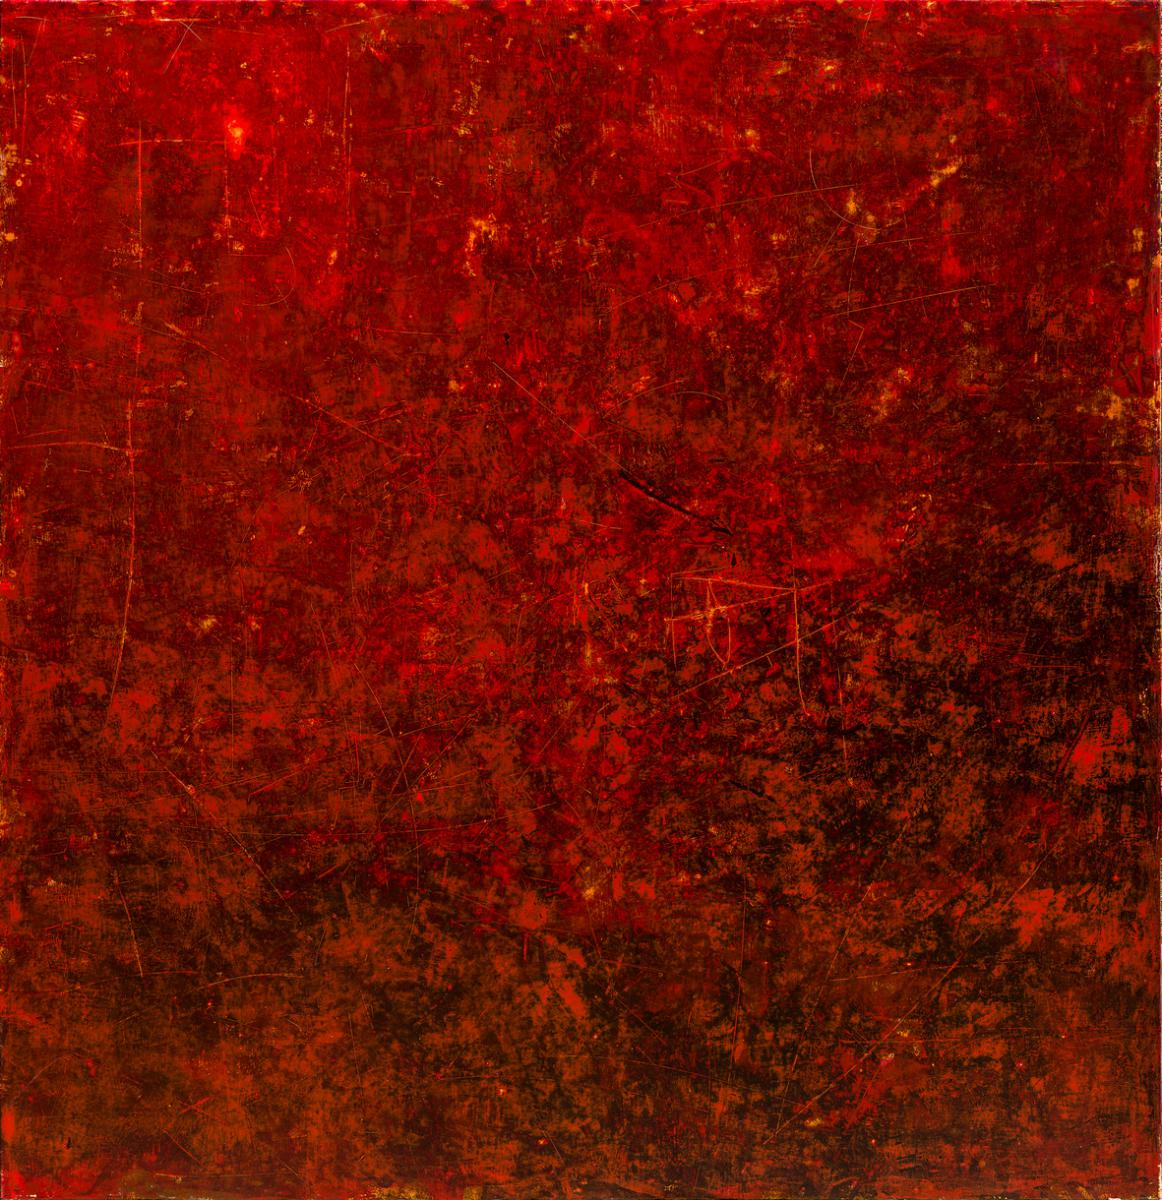 Red, 2016, 2019, 9/06/19-19/09/19 in mostra Arte All'Angelo